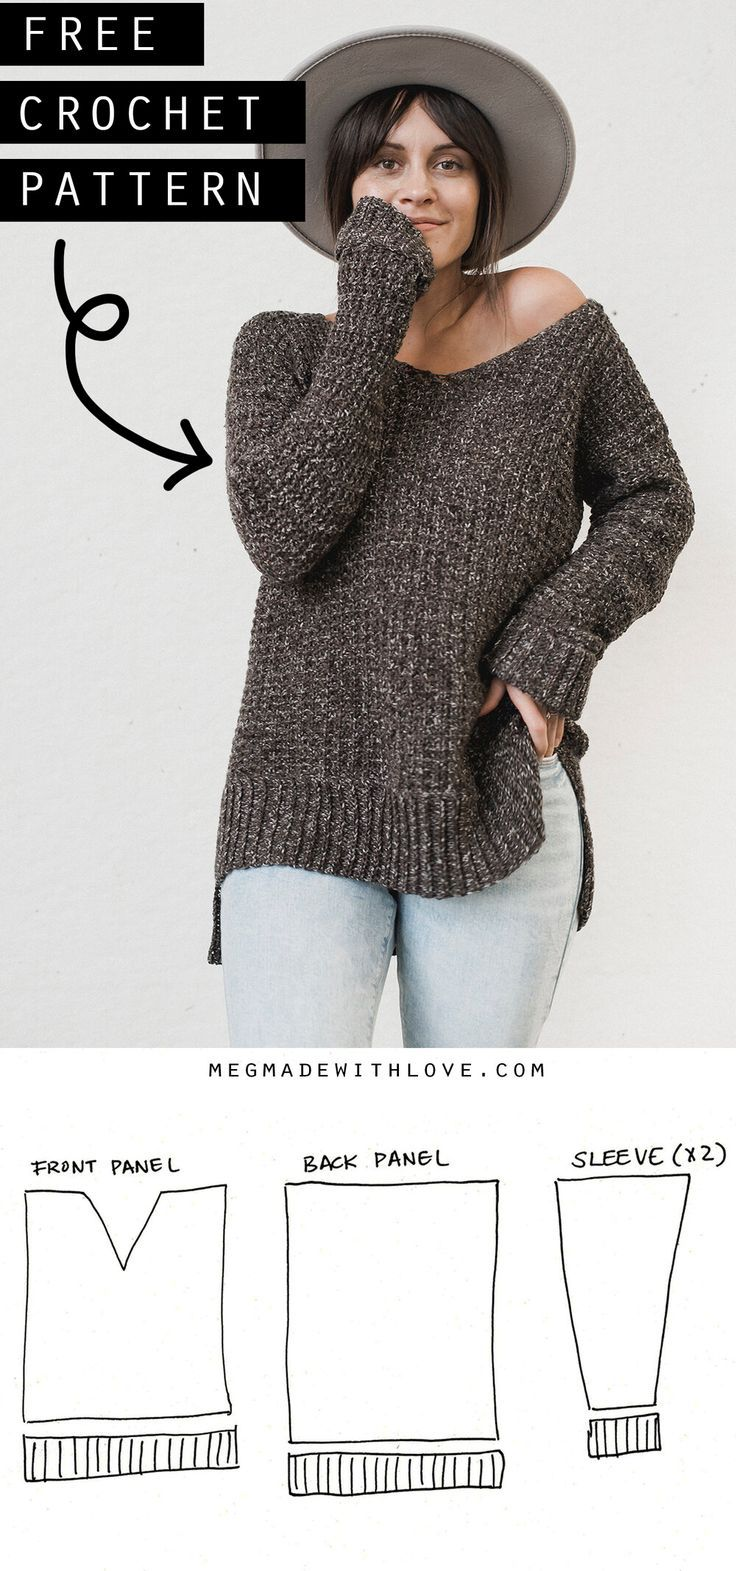 The Home Girl Sweater - Crochet Sweater Pattern — Megmade with Love